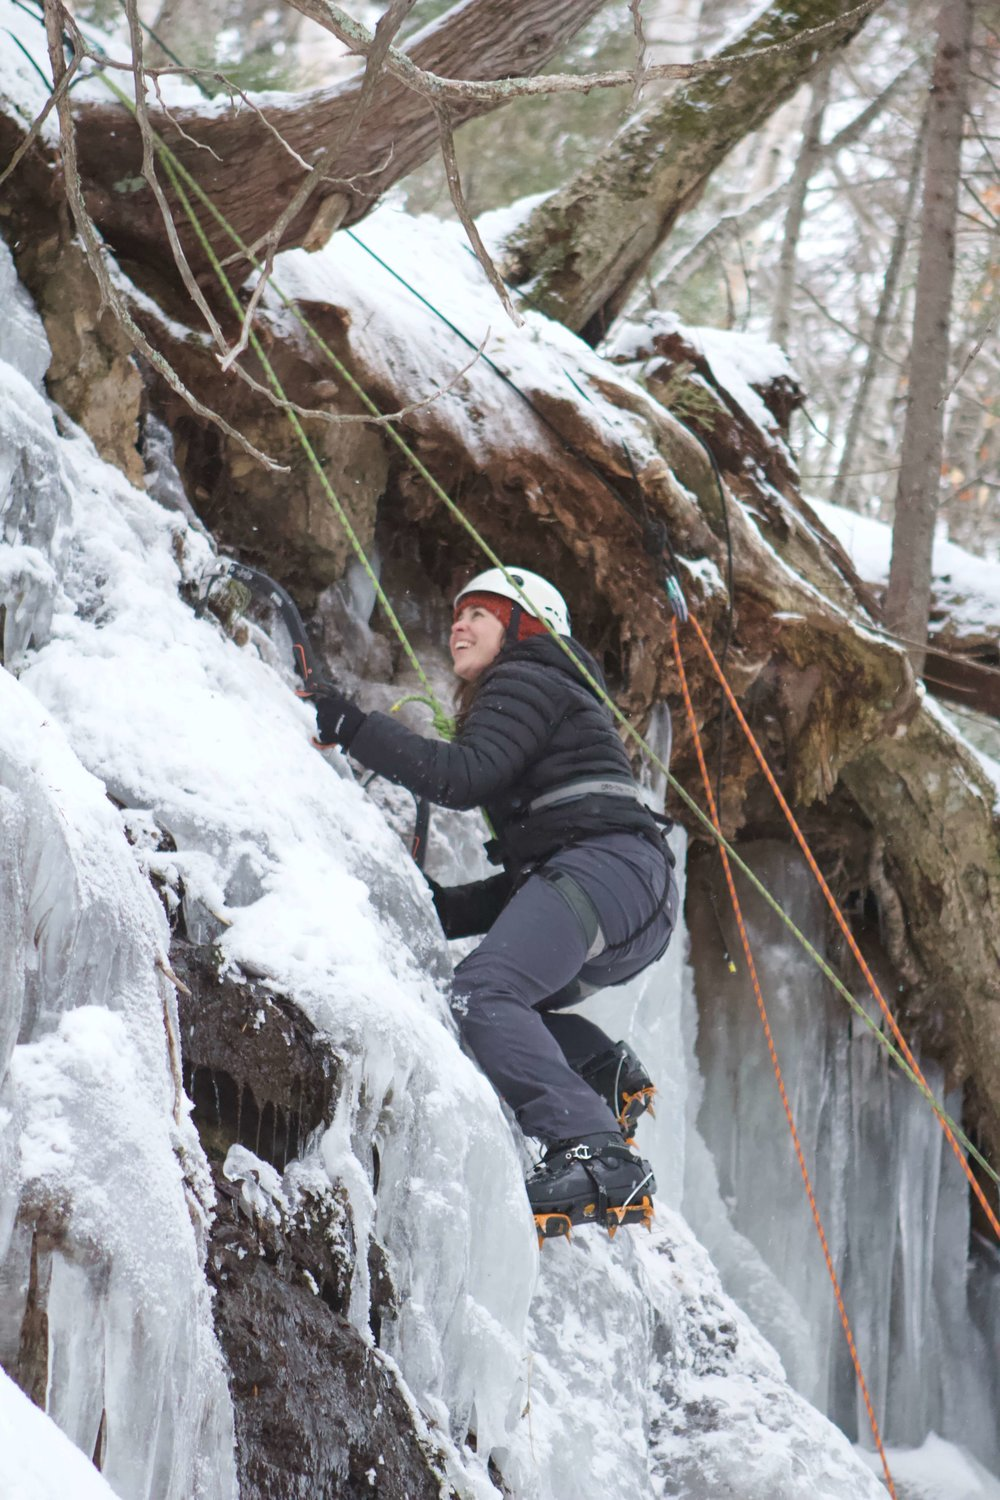 Ice Climbing at Pictured Rocks National Lakeshore